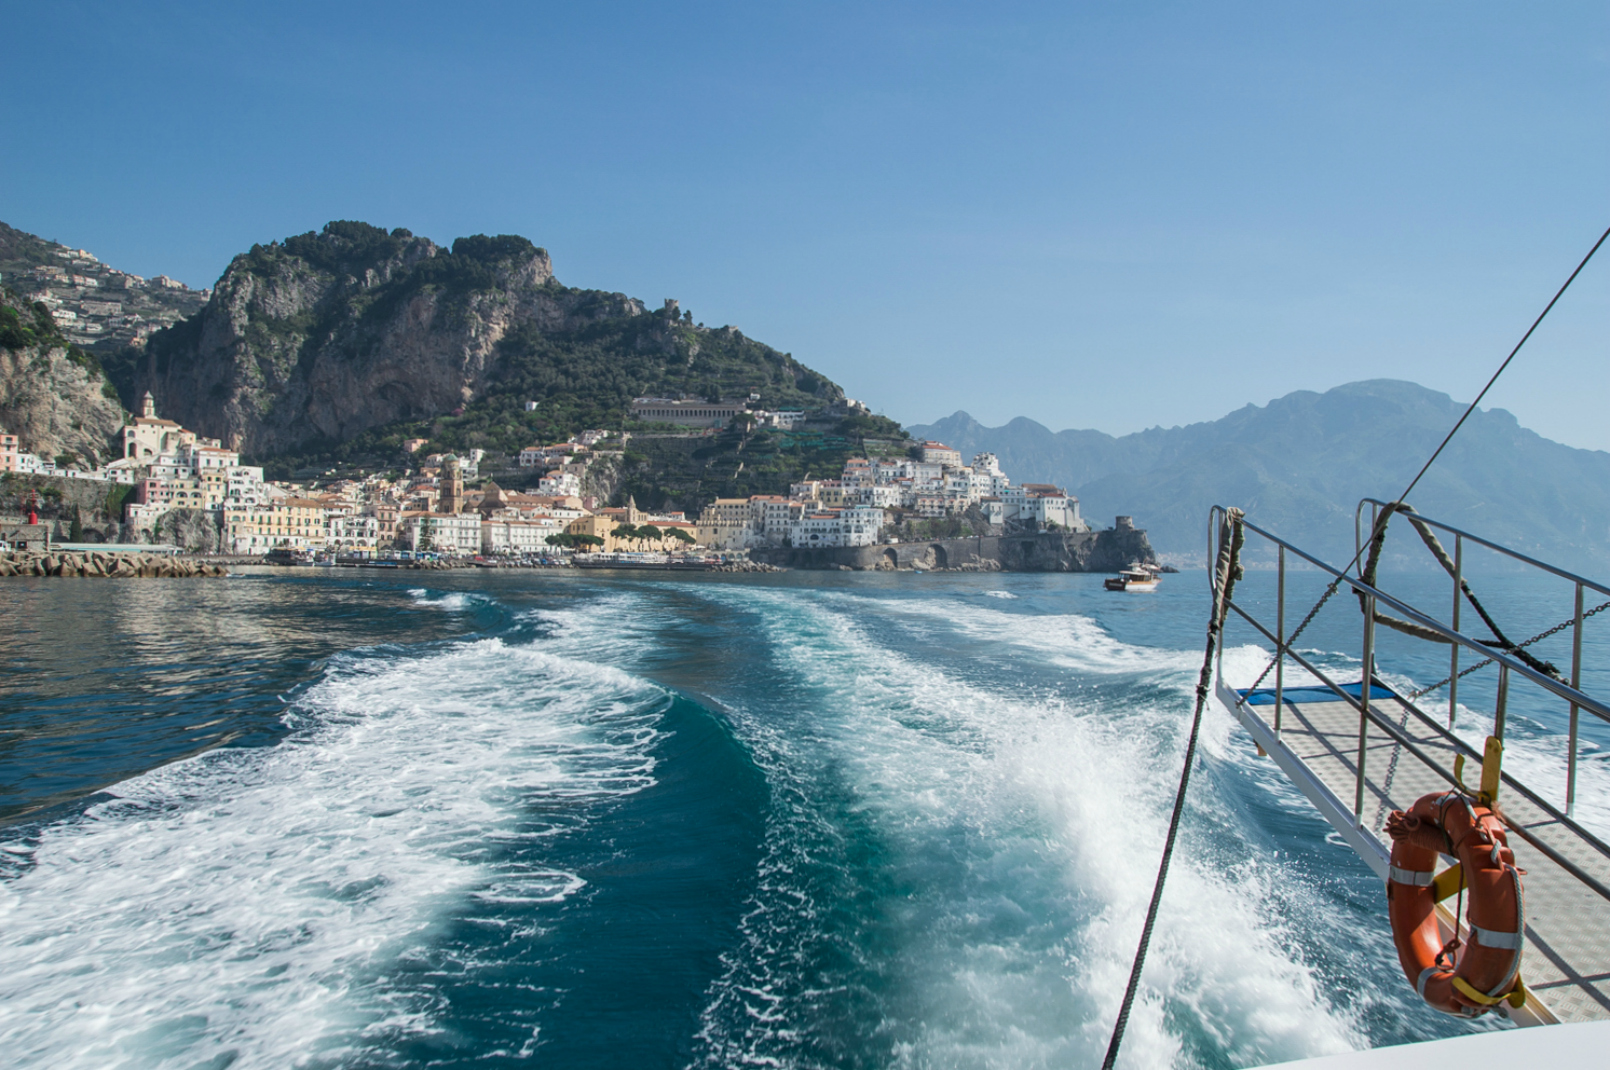 Amalfi Ferry - Amalfi Coast in the Spring